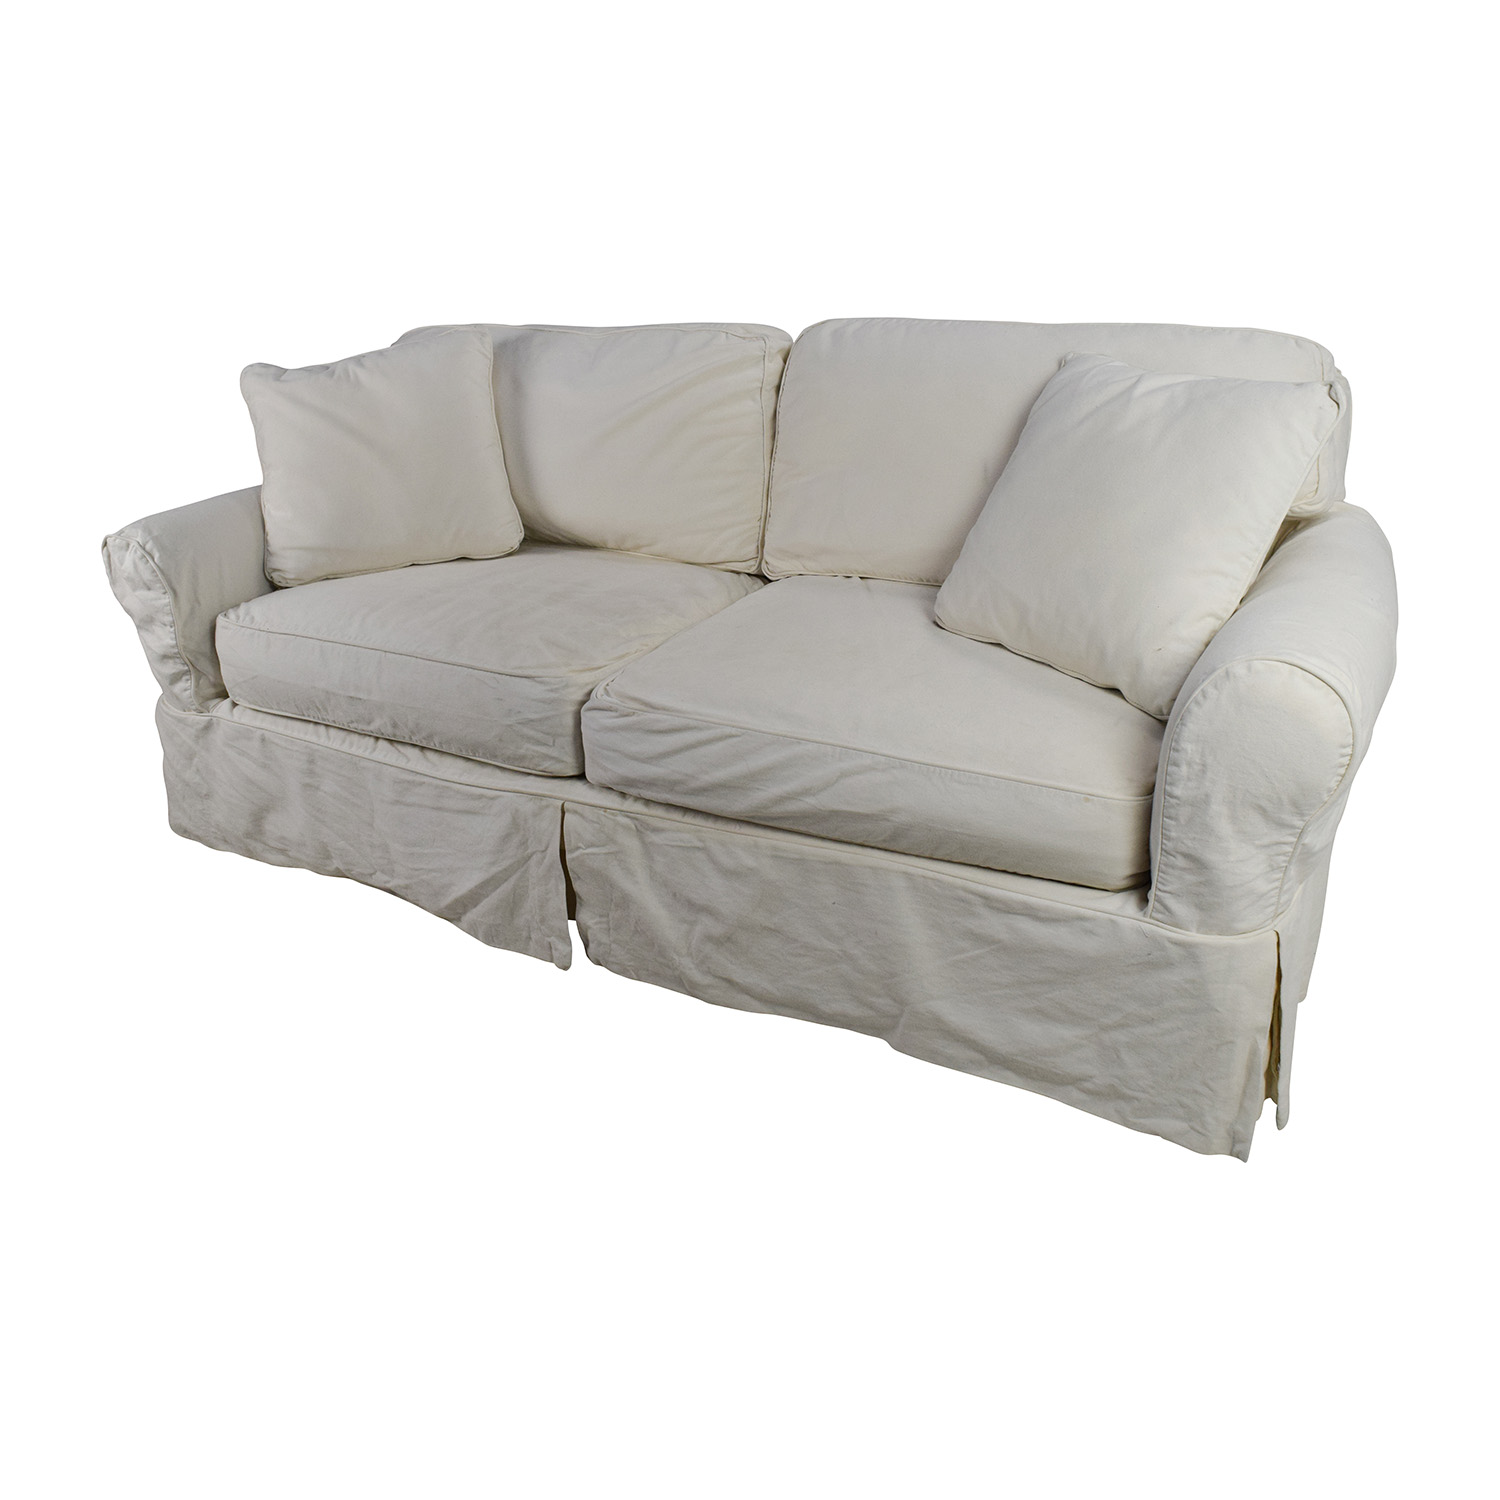 raymour and flanigan sectional sofas chesterfield leather sofa craigslist 87 off lakeside